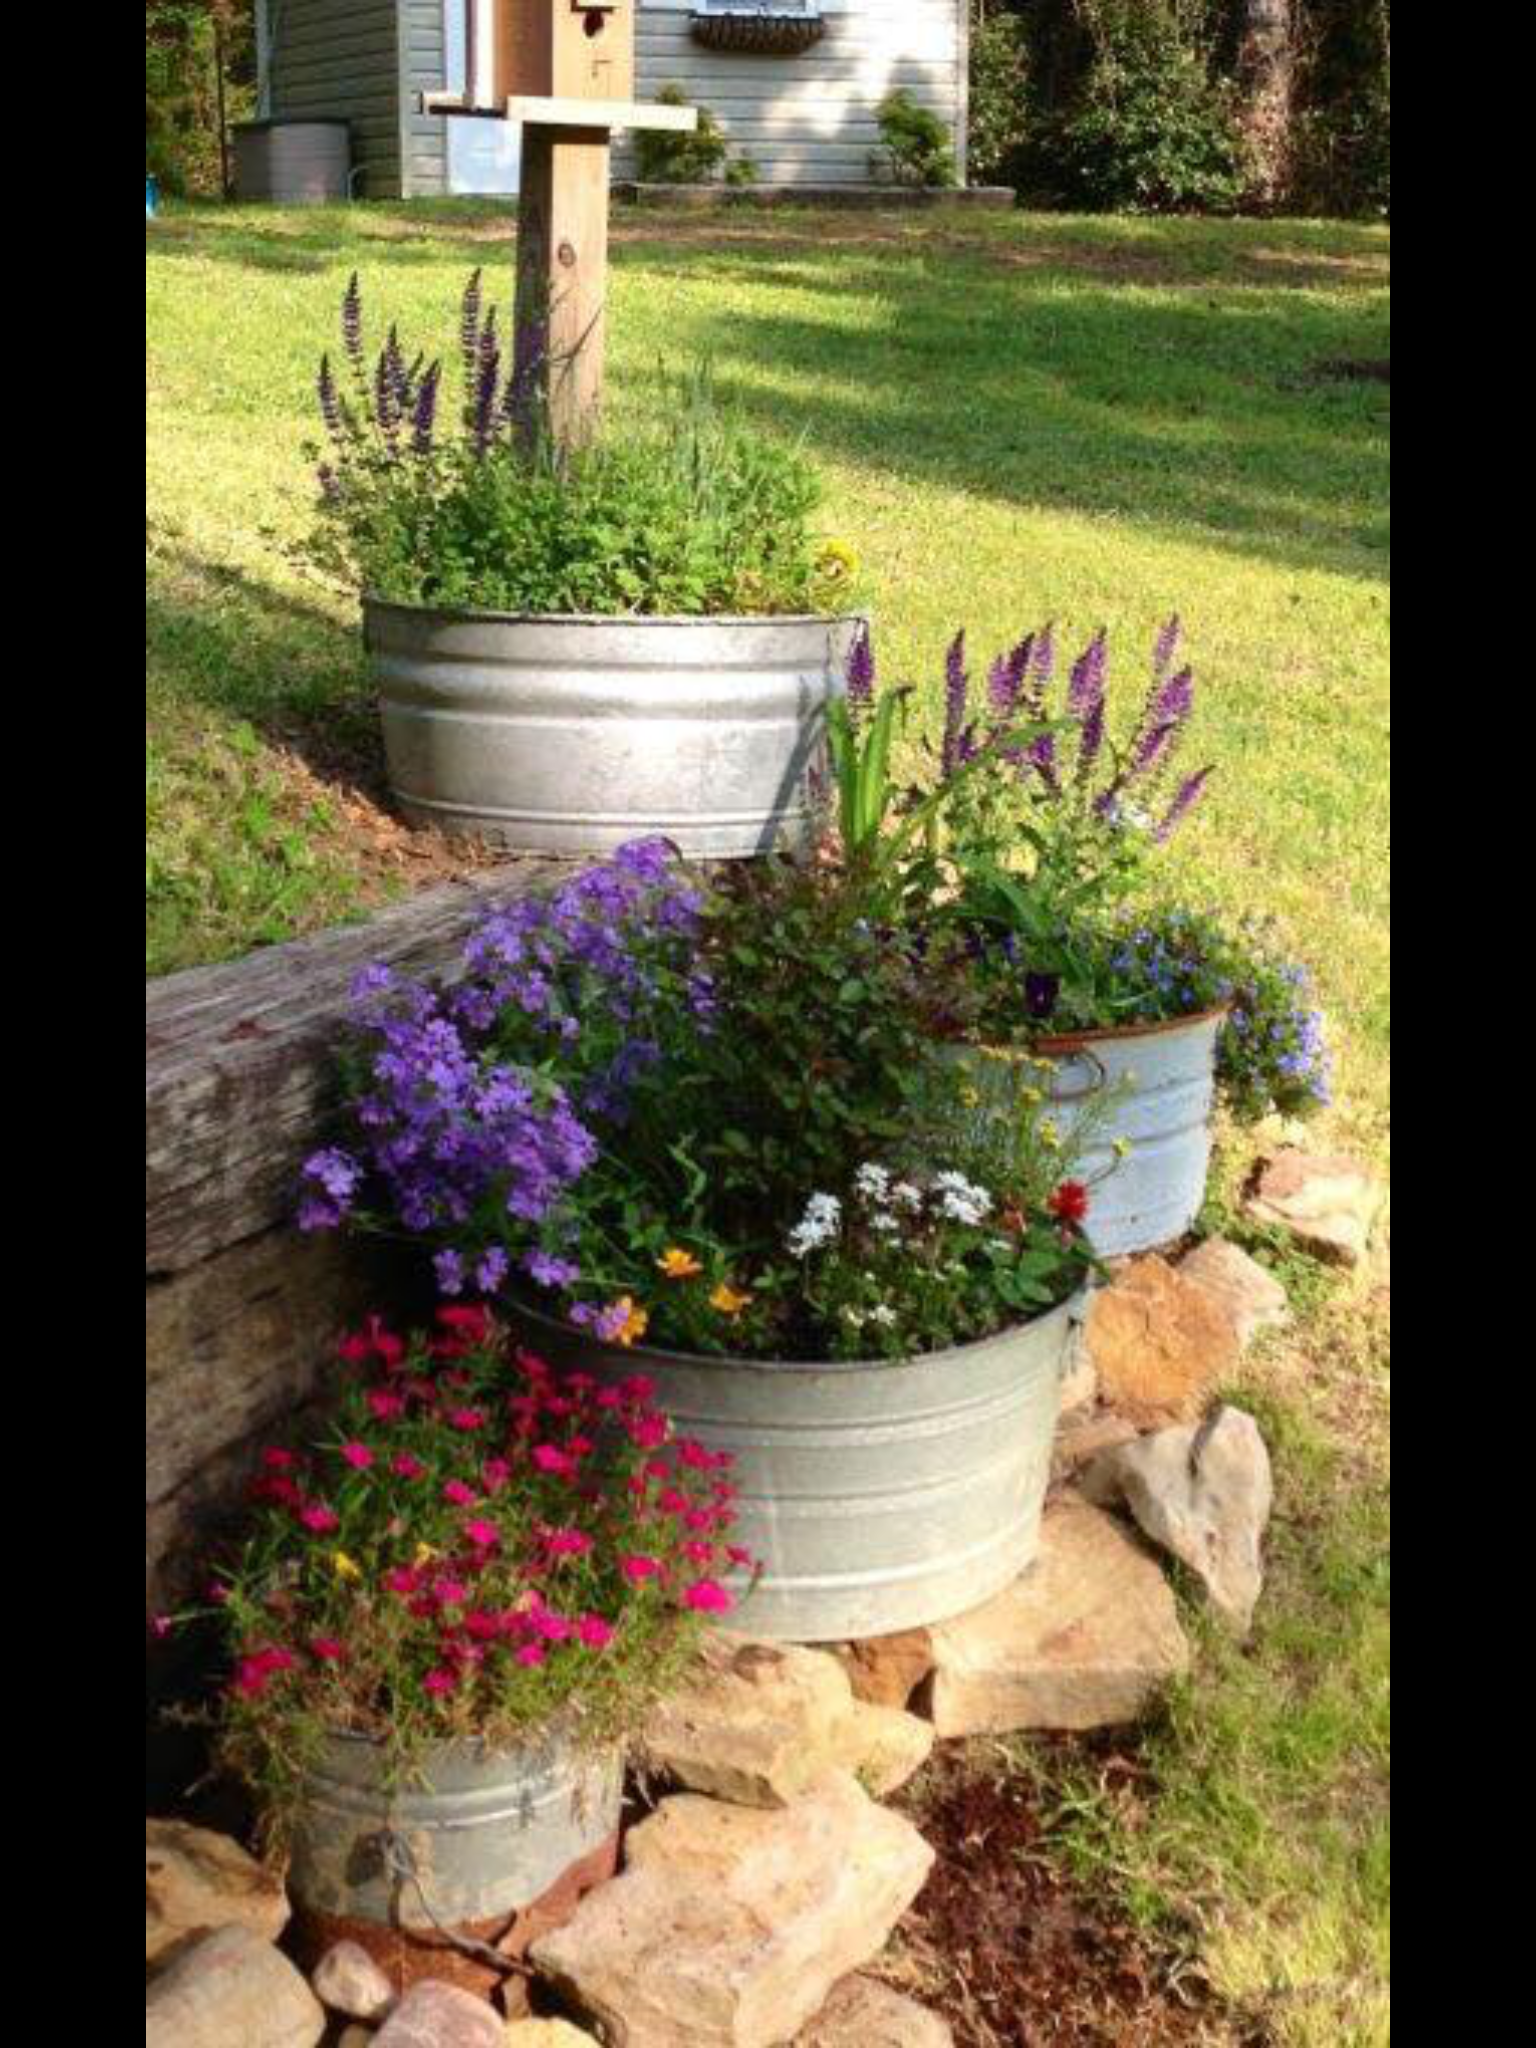 High Quality Galvanized Metal Tubs Filled With Flowers